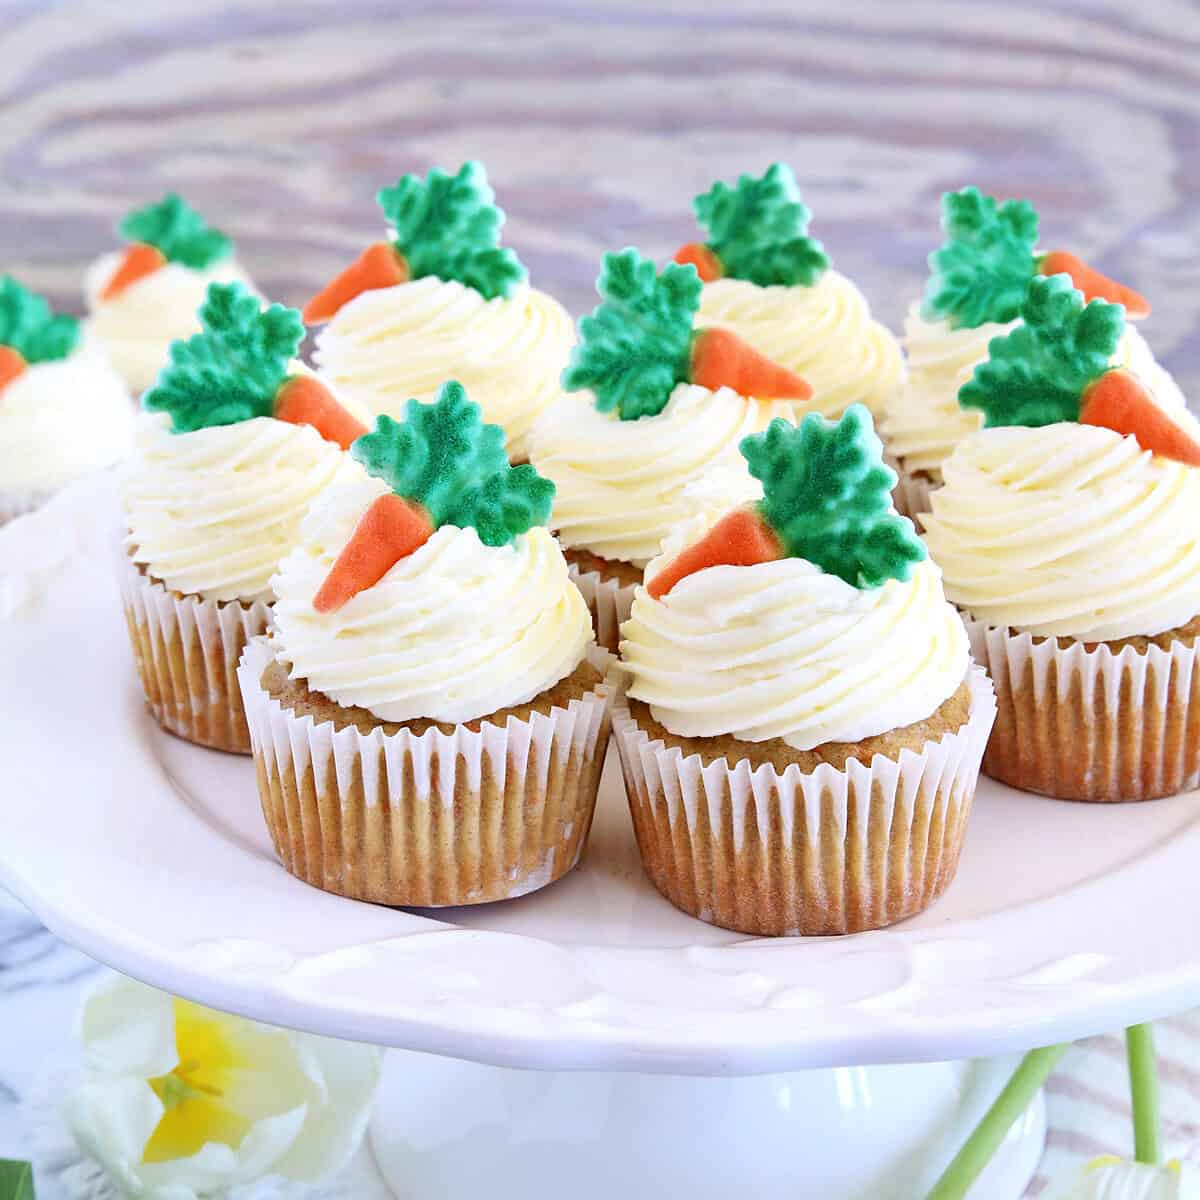 These The Best Carrot Cake Cupcakes are moist, fluffy, and spongy soft, delicious cupcakes you'll ever try. They are made completely from scratch, down to the freshly grated carrots, and topped with a generous swirl of the absolute best cream cheese frosting!